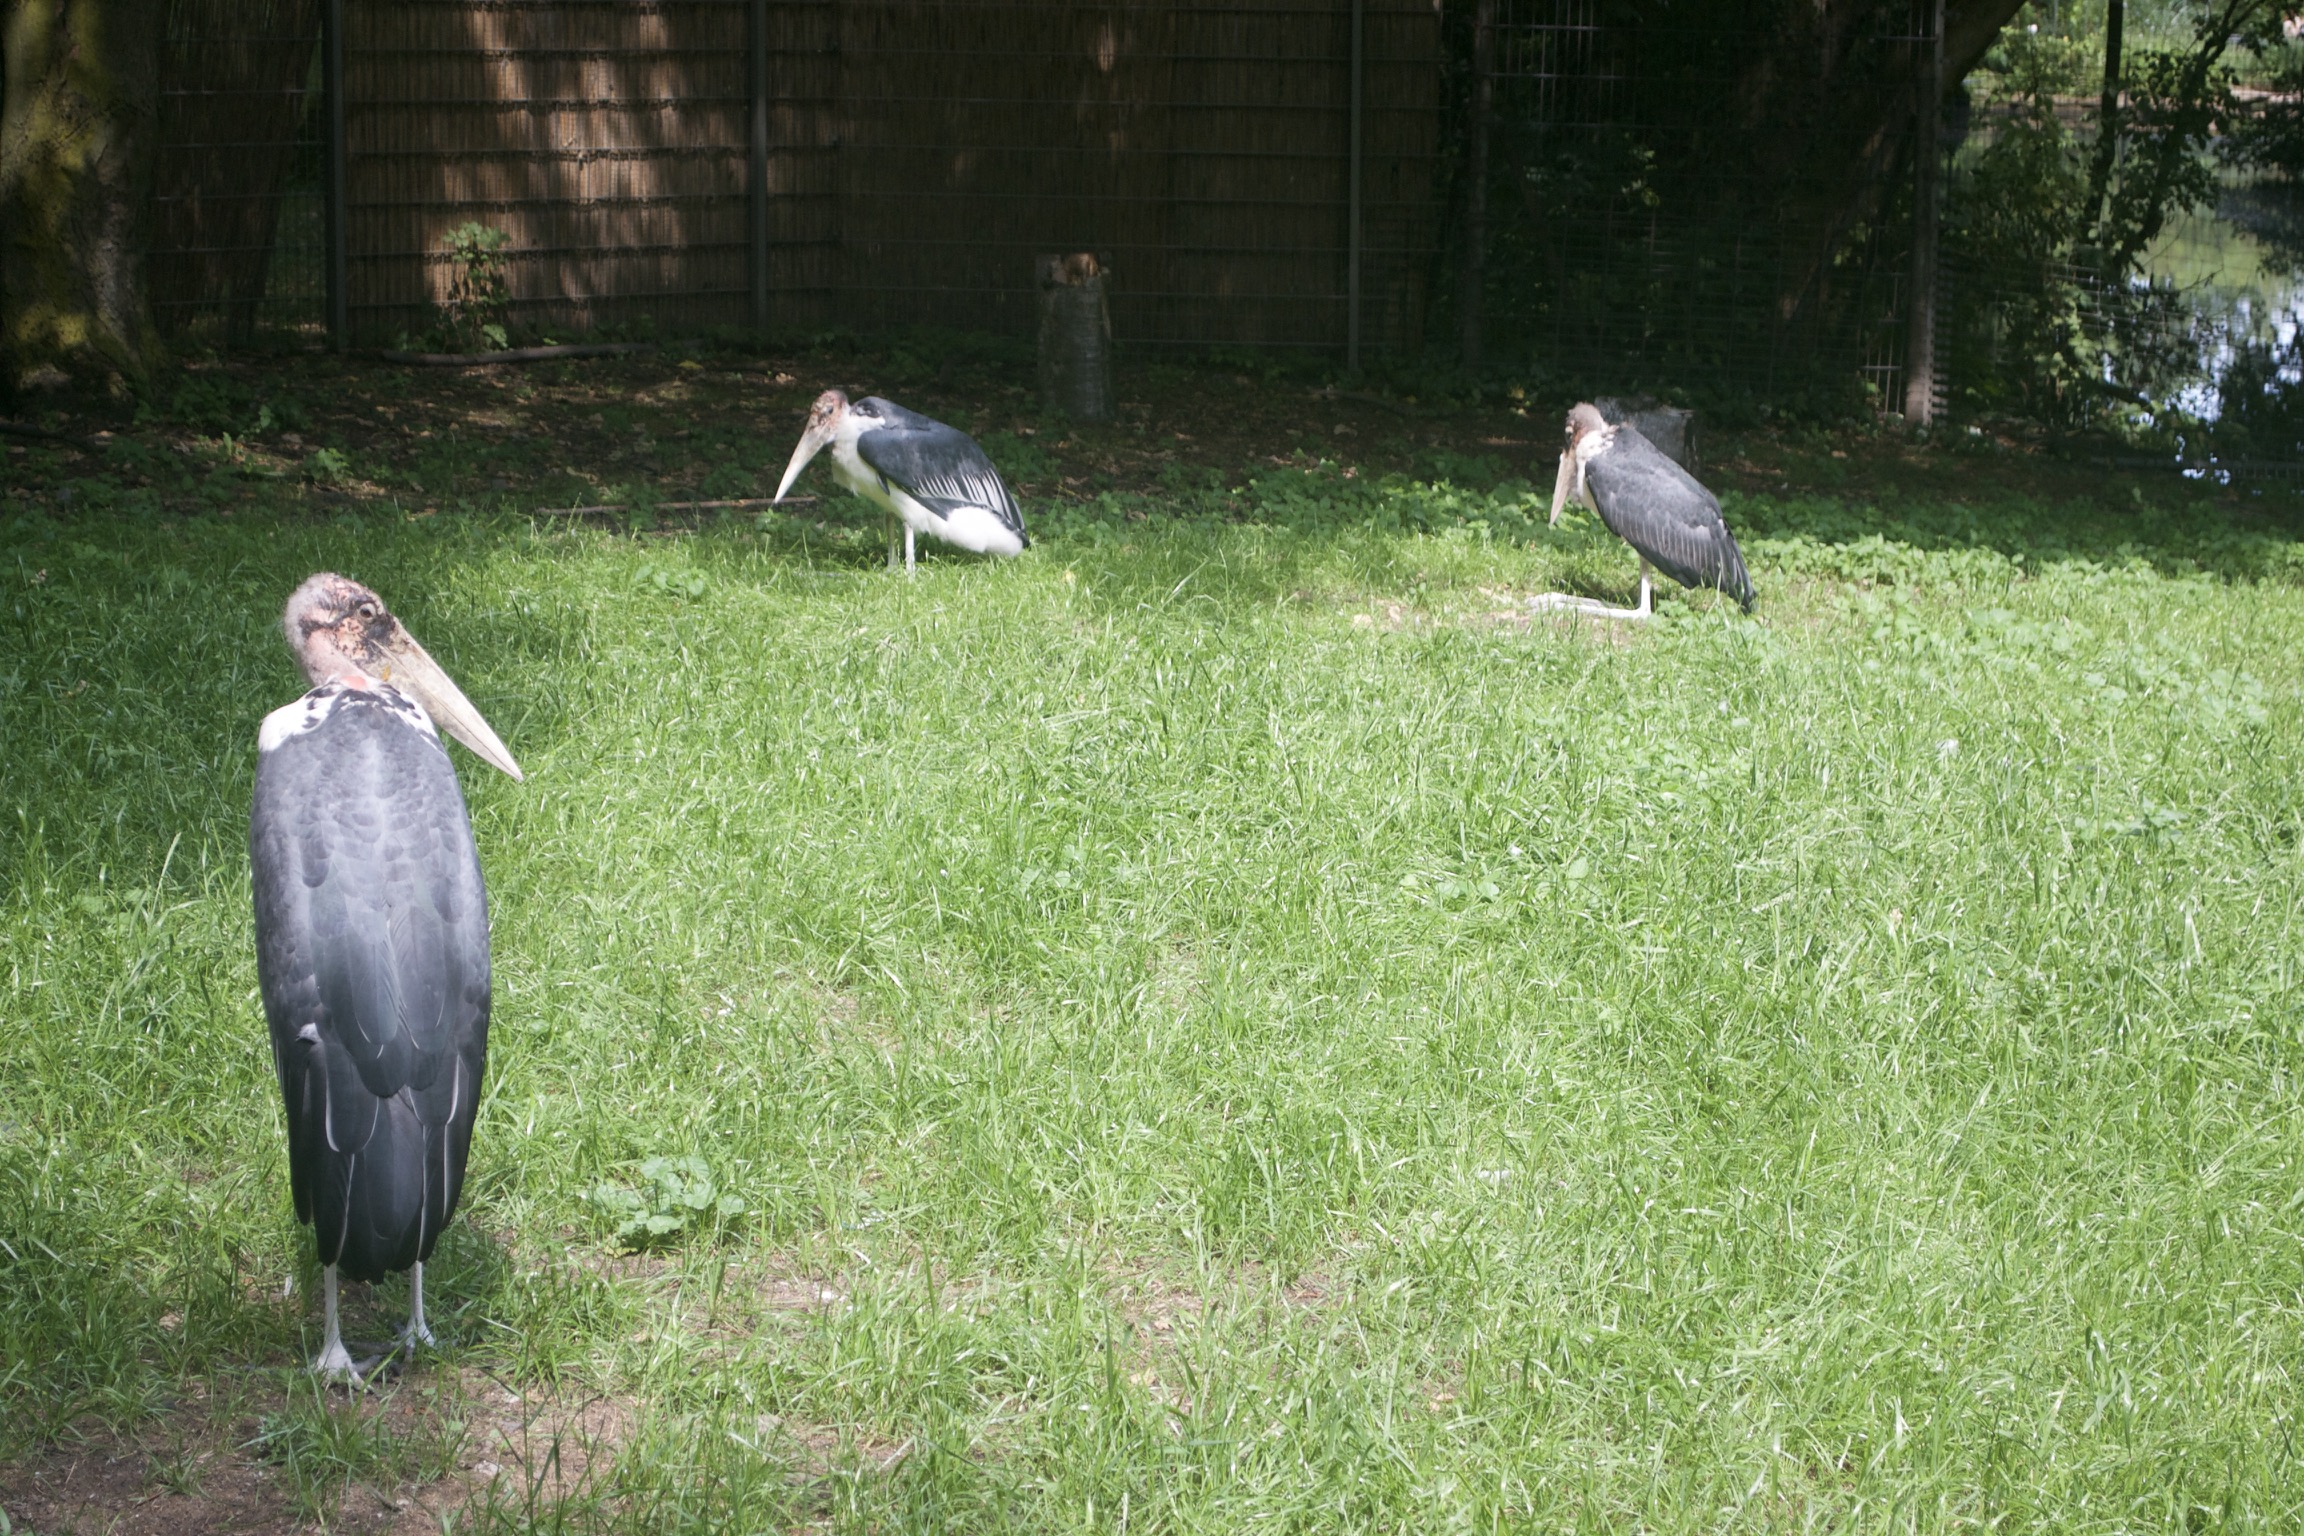 Three enormous black birds with bald heads and long beaks relax on grass.